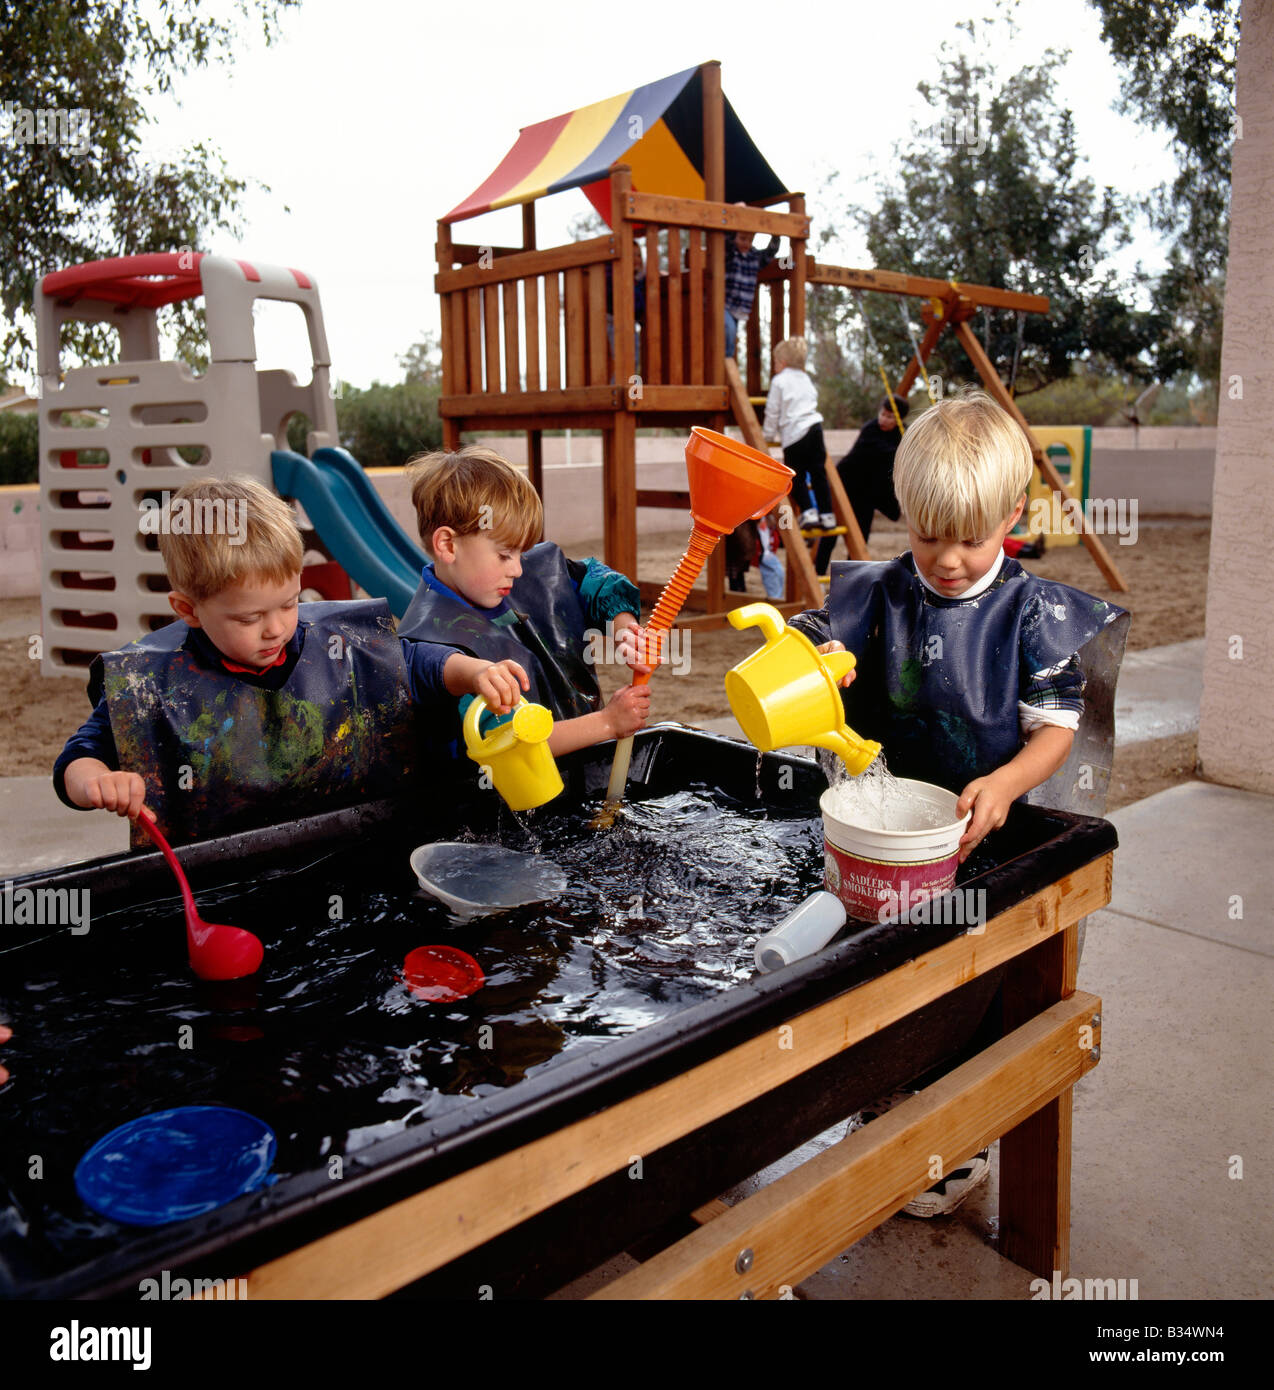 Young Children Playing At A Water Table Game In An Arizona